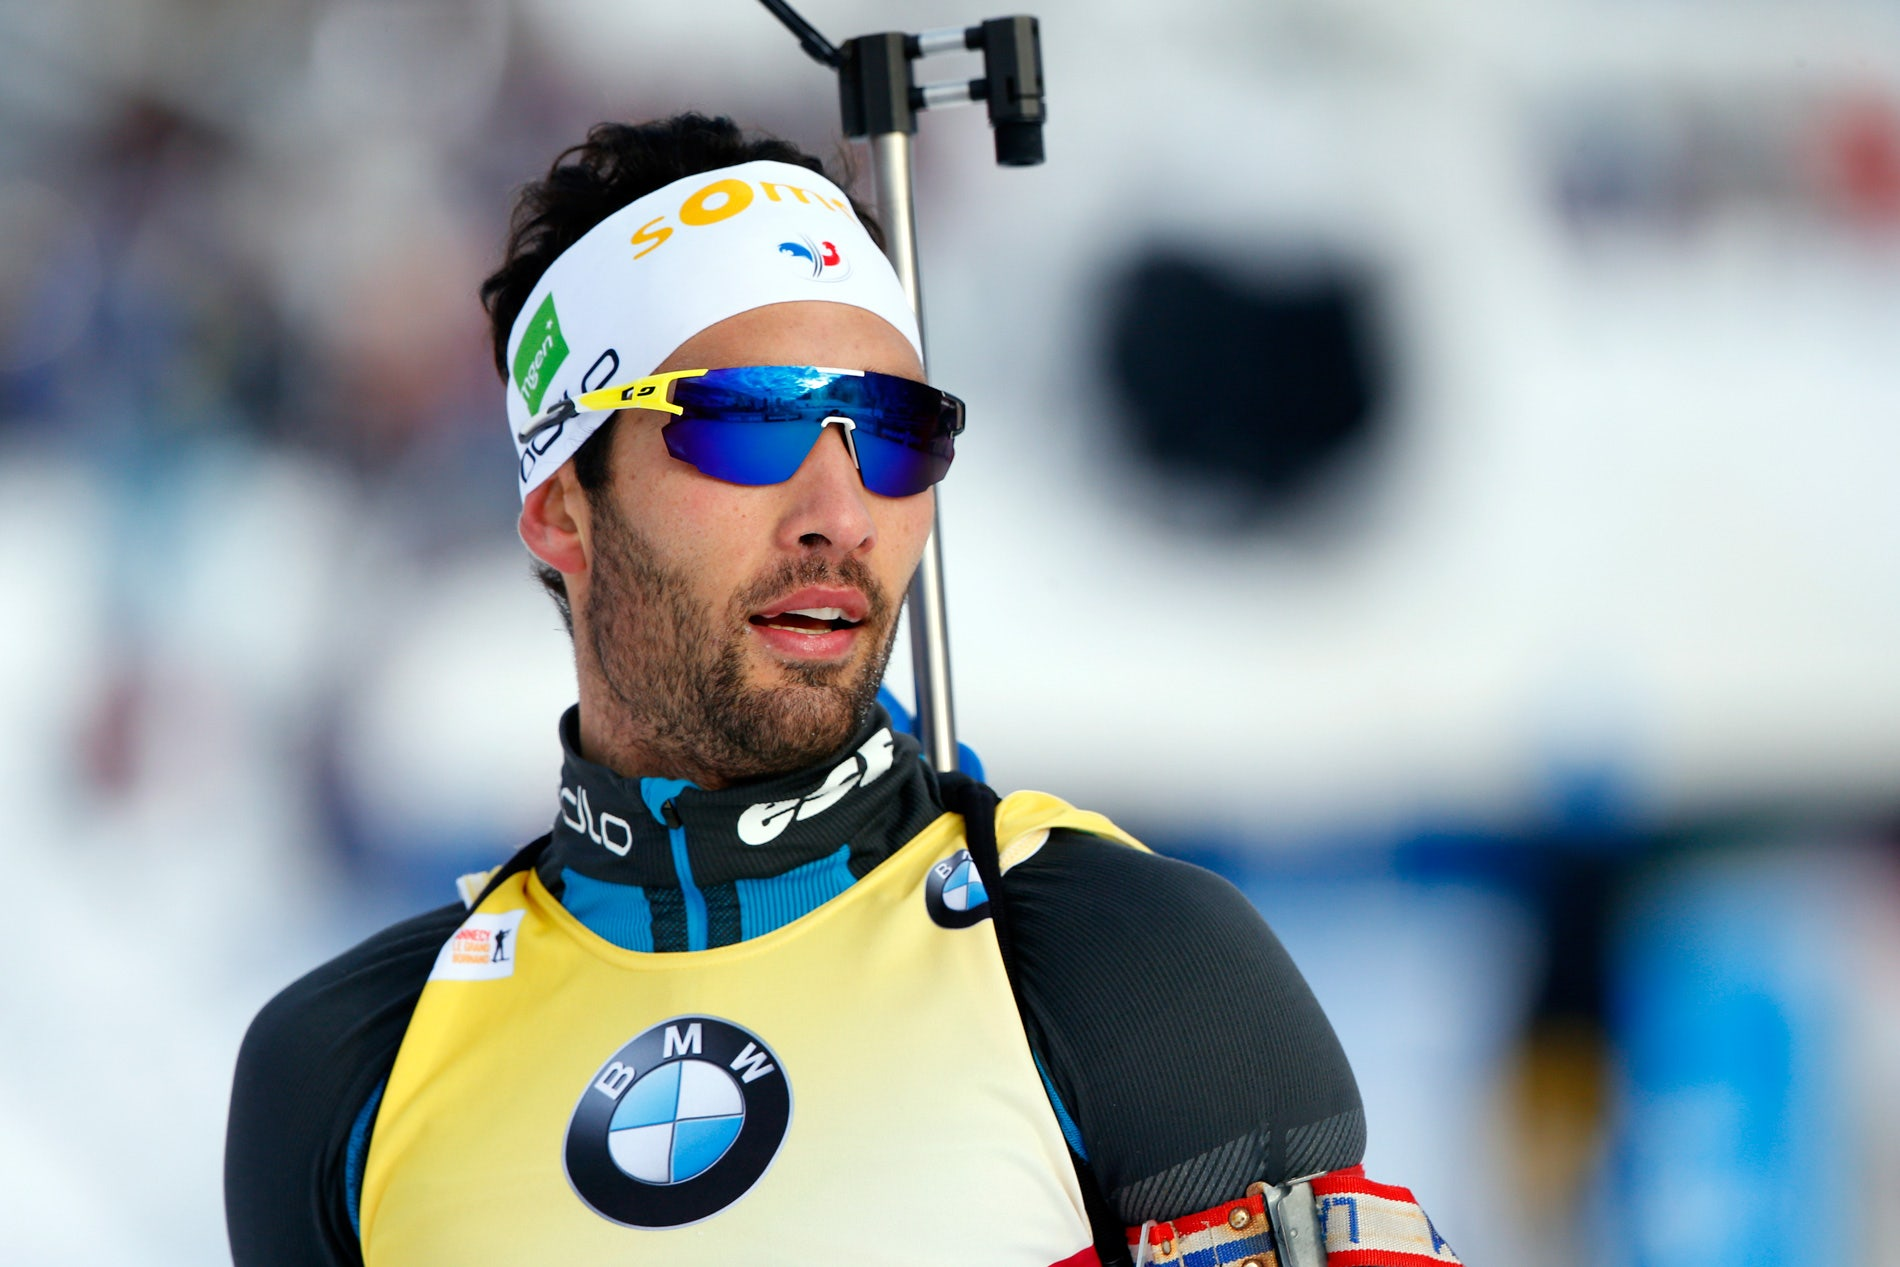 Martin Fourcade : « a race against myself »